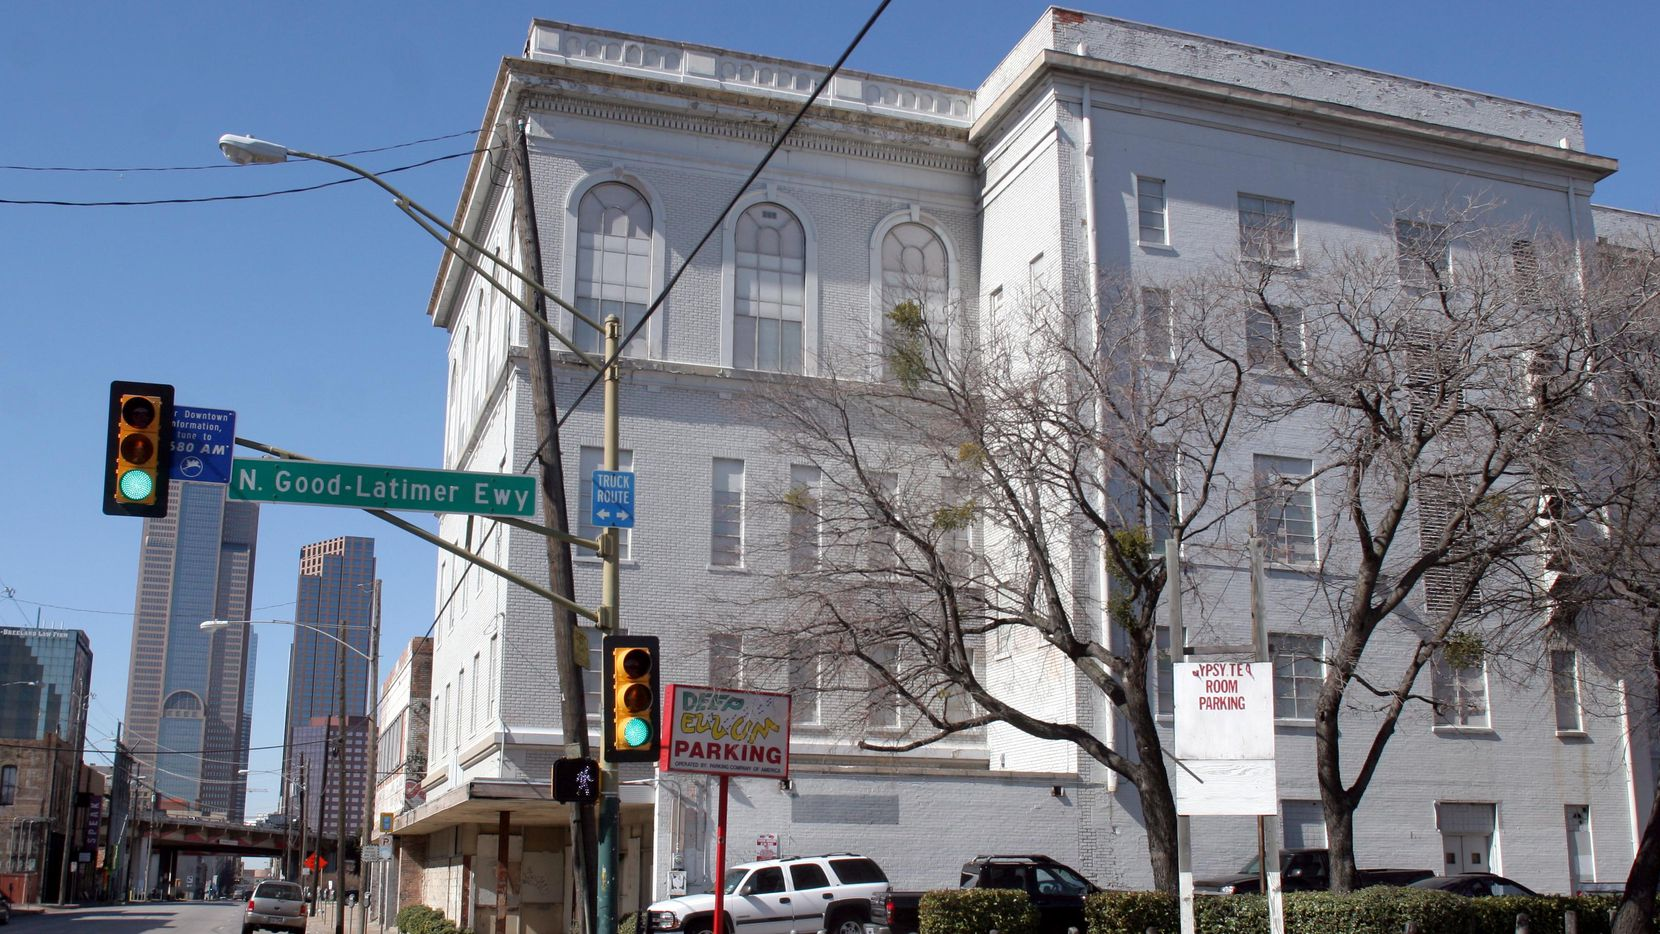 The historic former Knights of Pythias building on Elm Street is being converted into a luxury hotel.